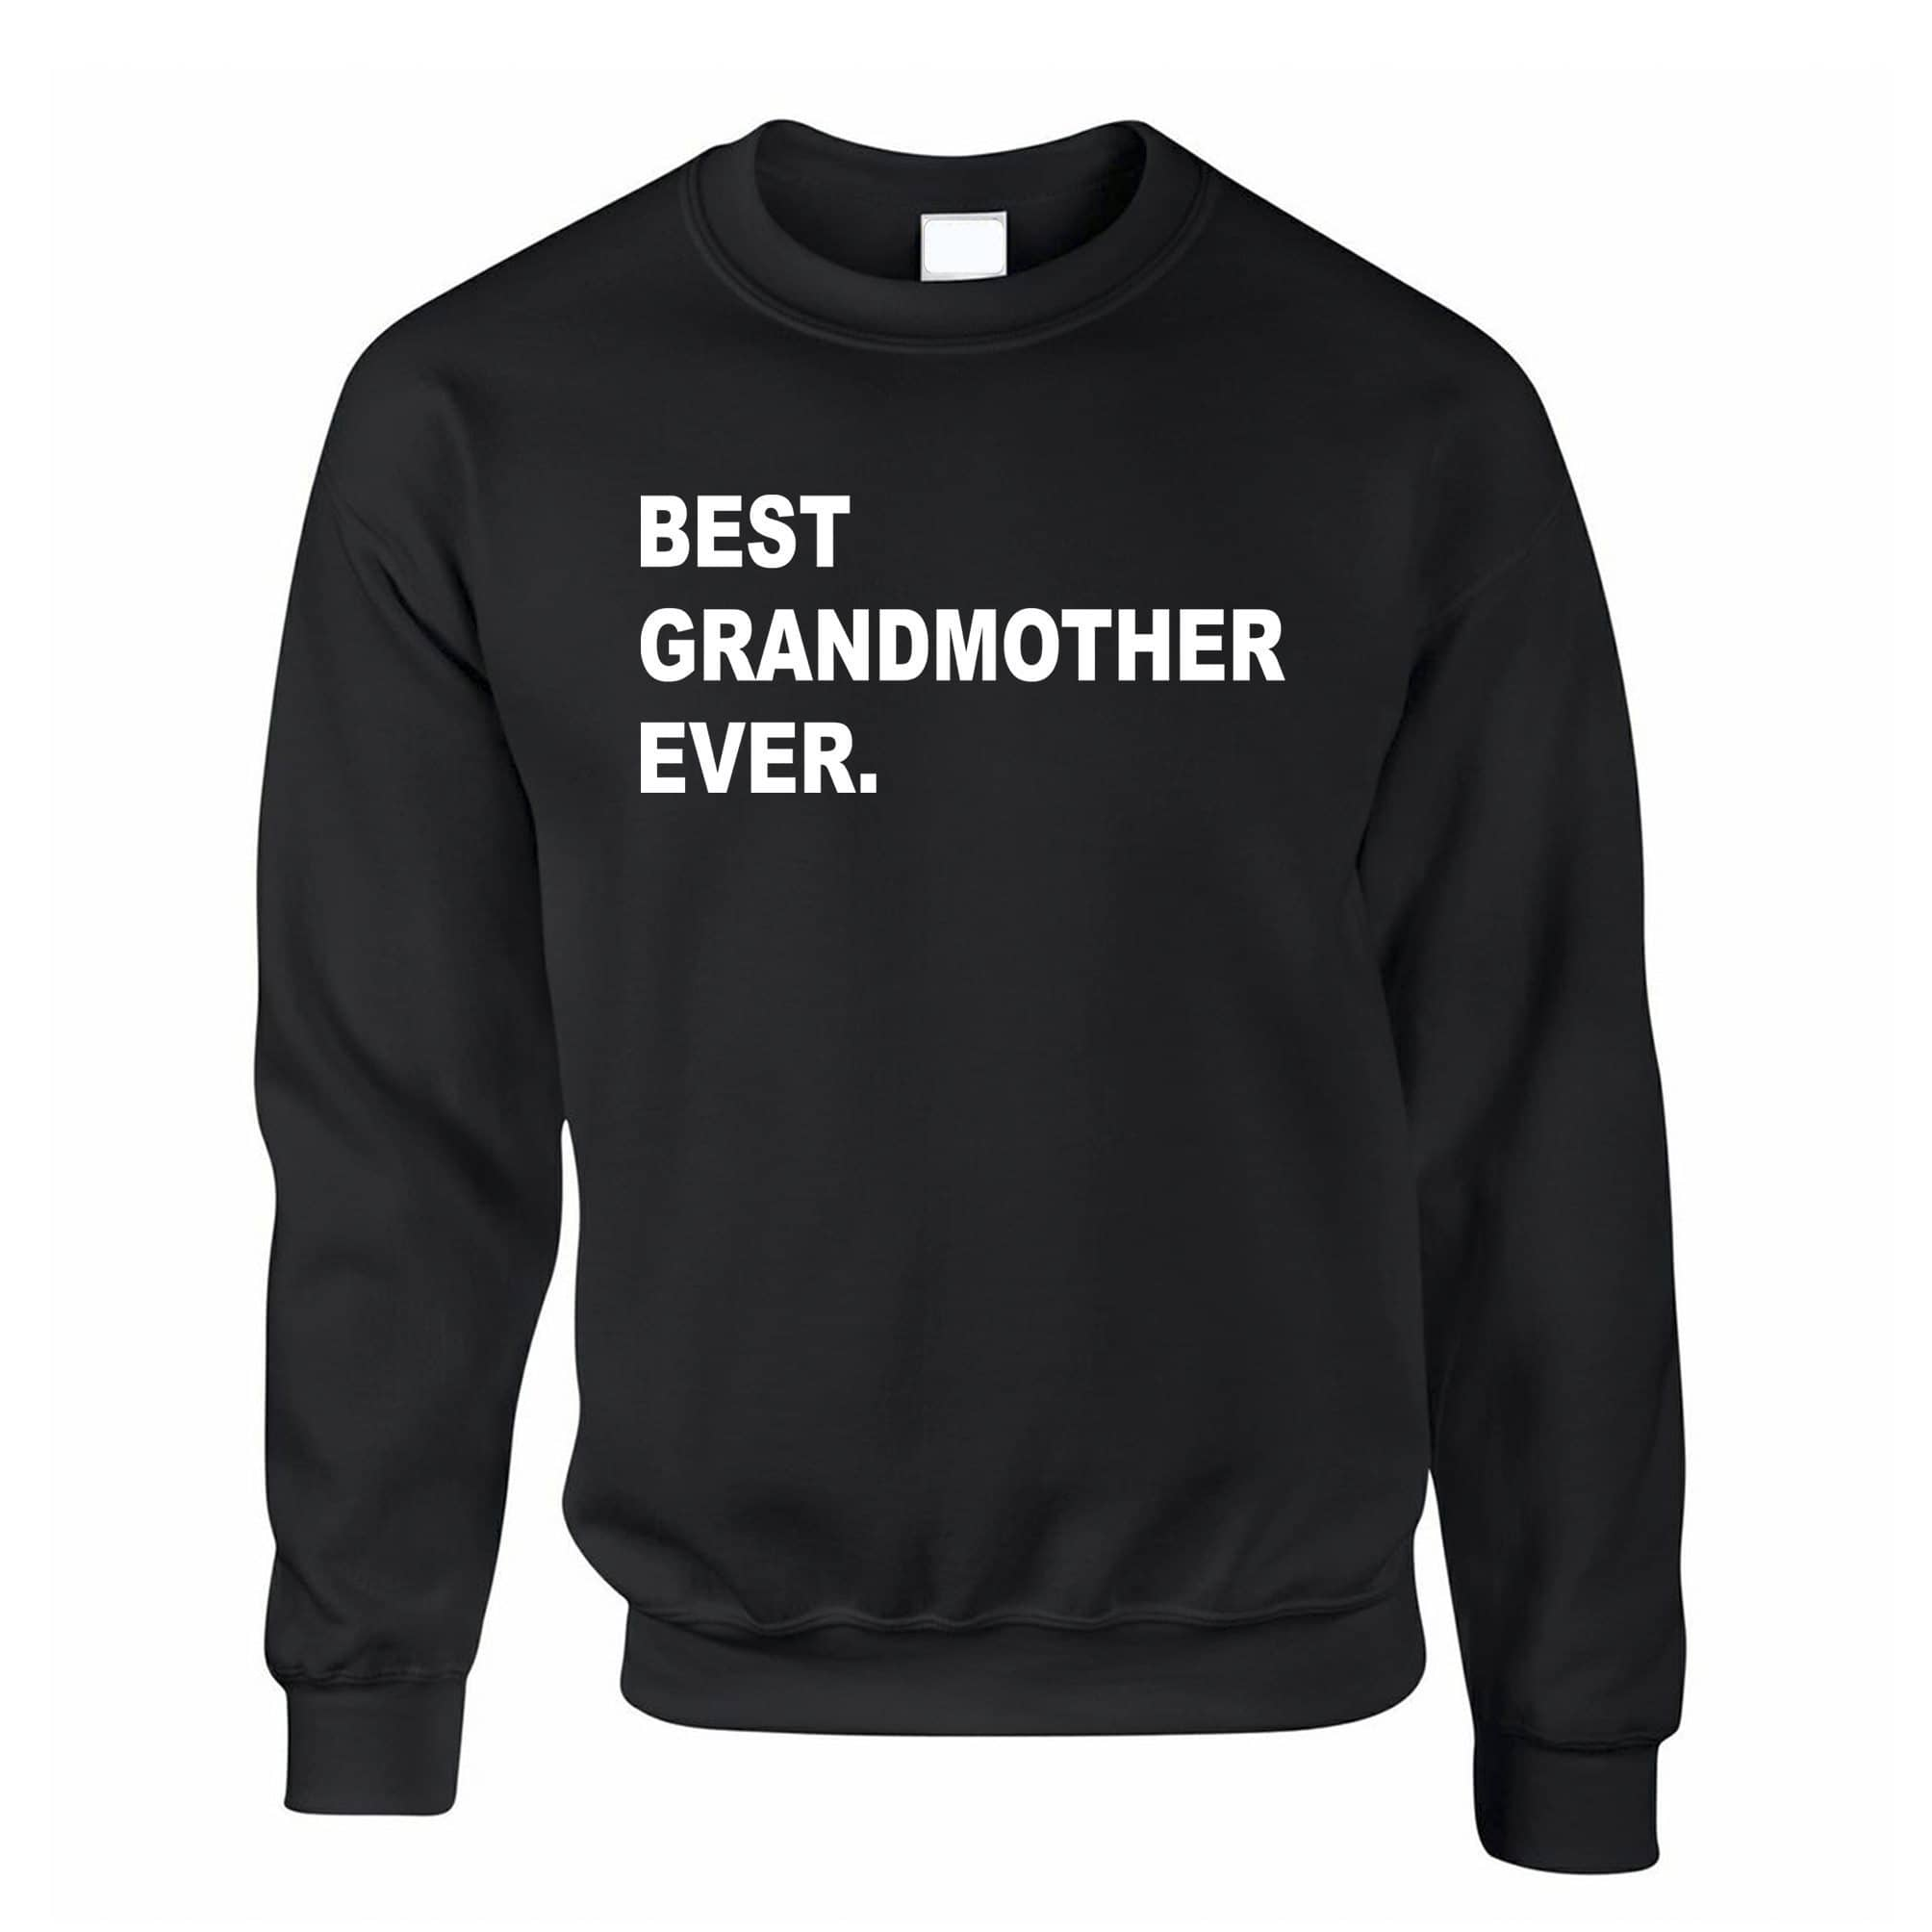 Best Grandmother Ever Jumper Parent Family Slogan Sweatshirt Sweater